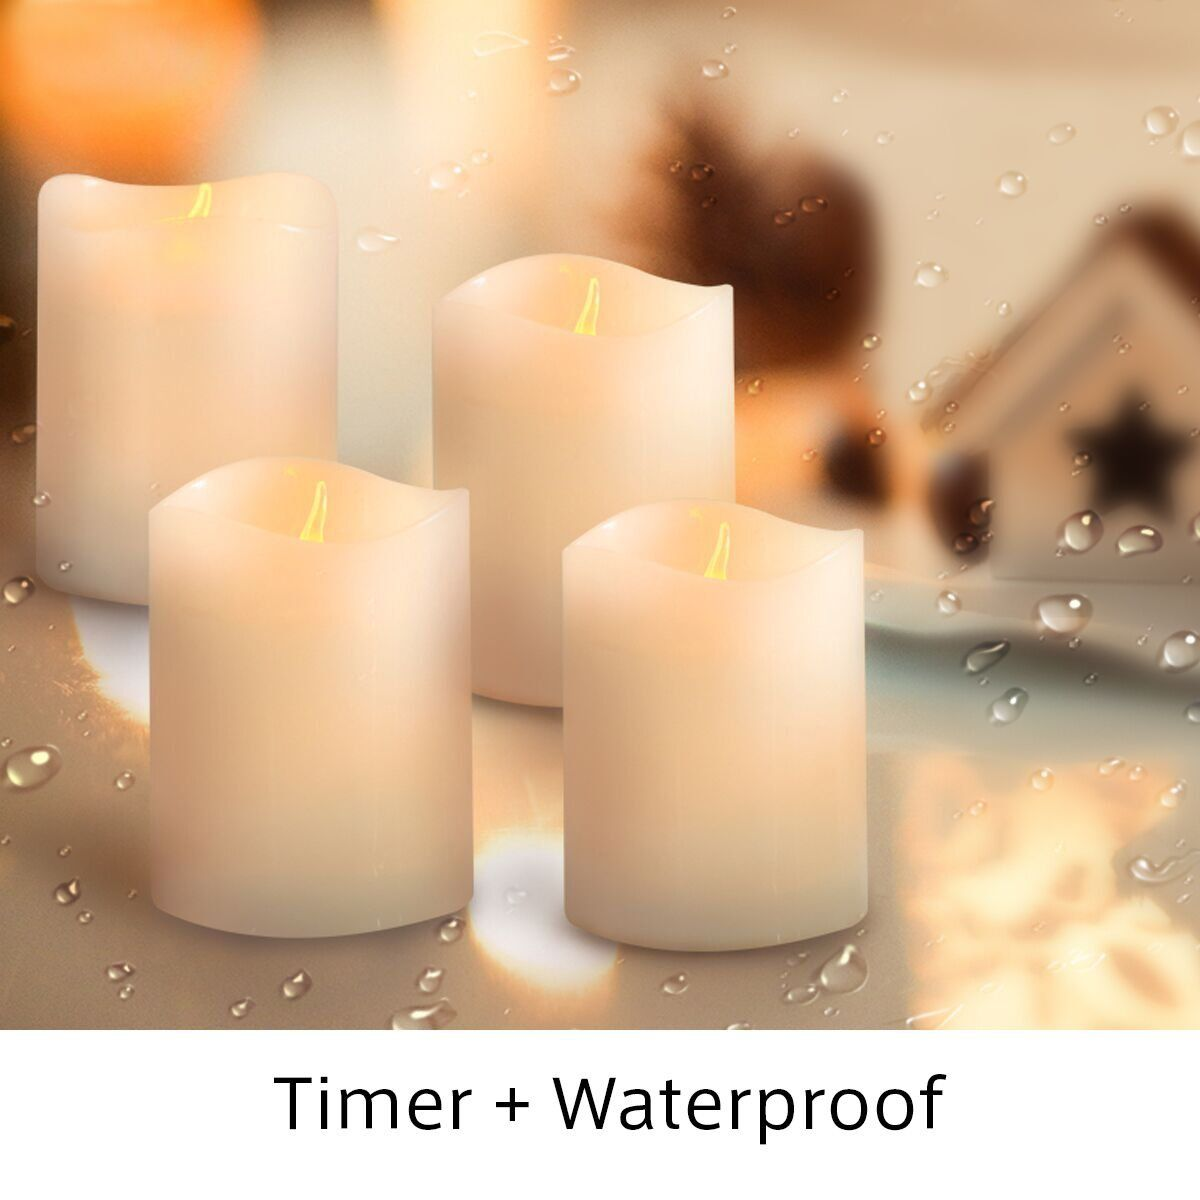 Flameless Votive Candles Kmsdeco Flameless Pillar Candles Waterproof Led Votive Candles With